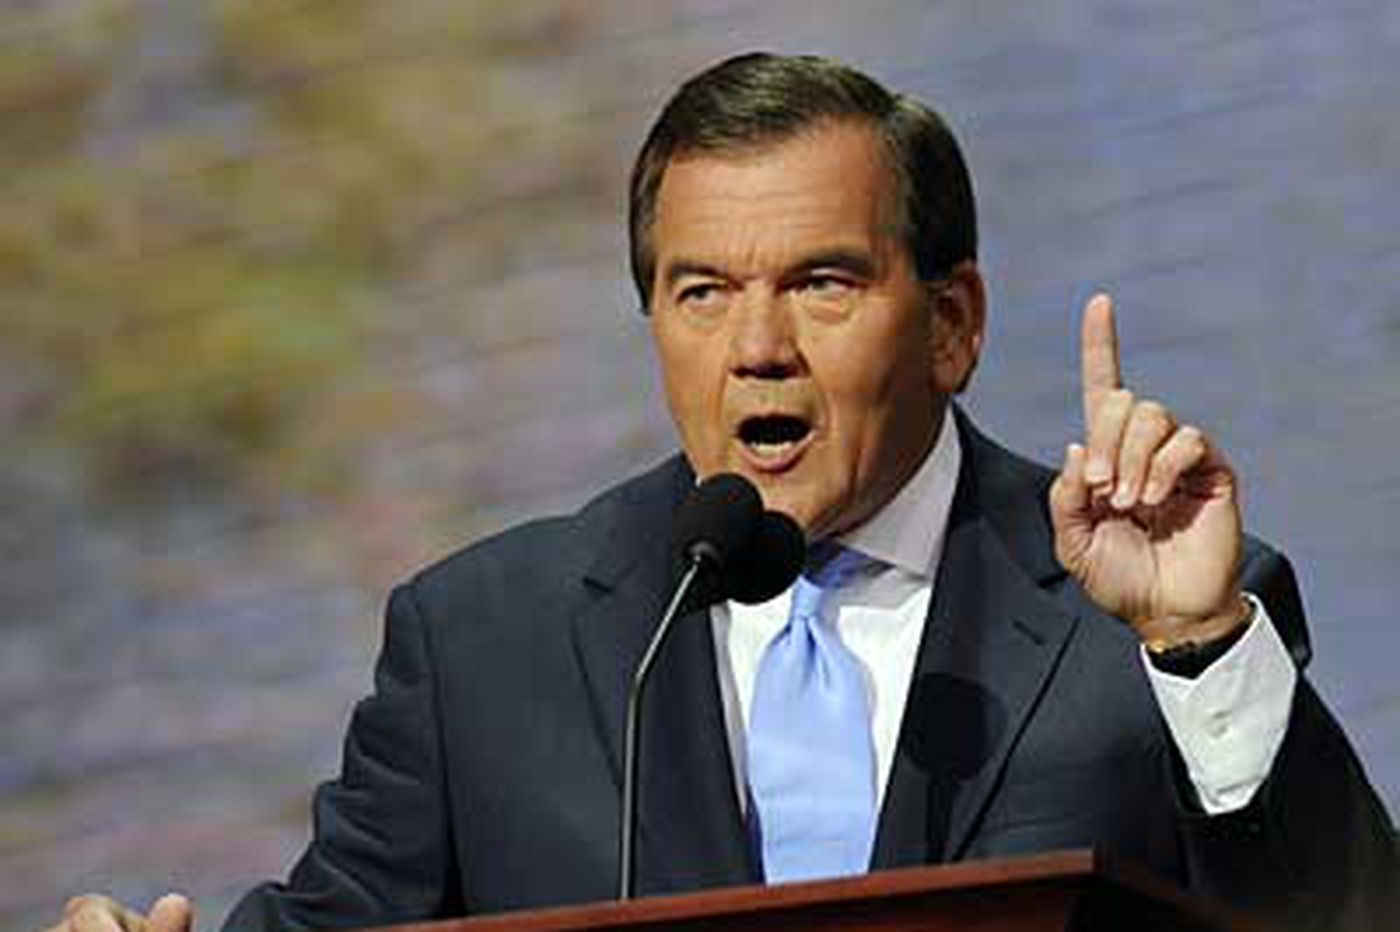 Former Gov. Tom Ridge: Americans deserve secure borders and a productive economy | Opinion